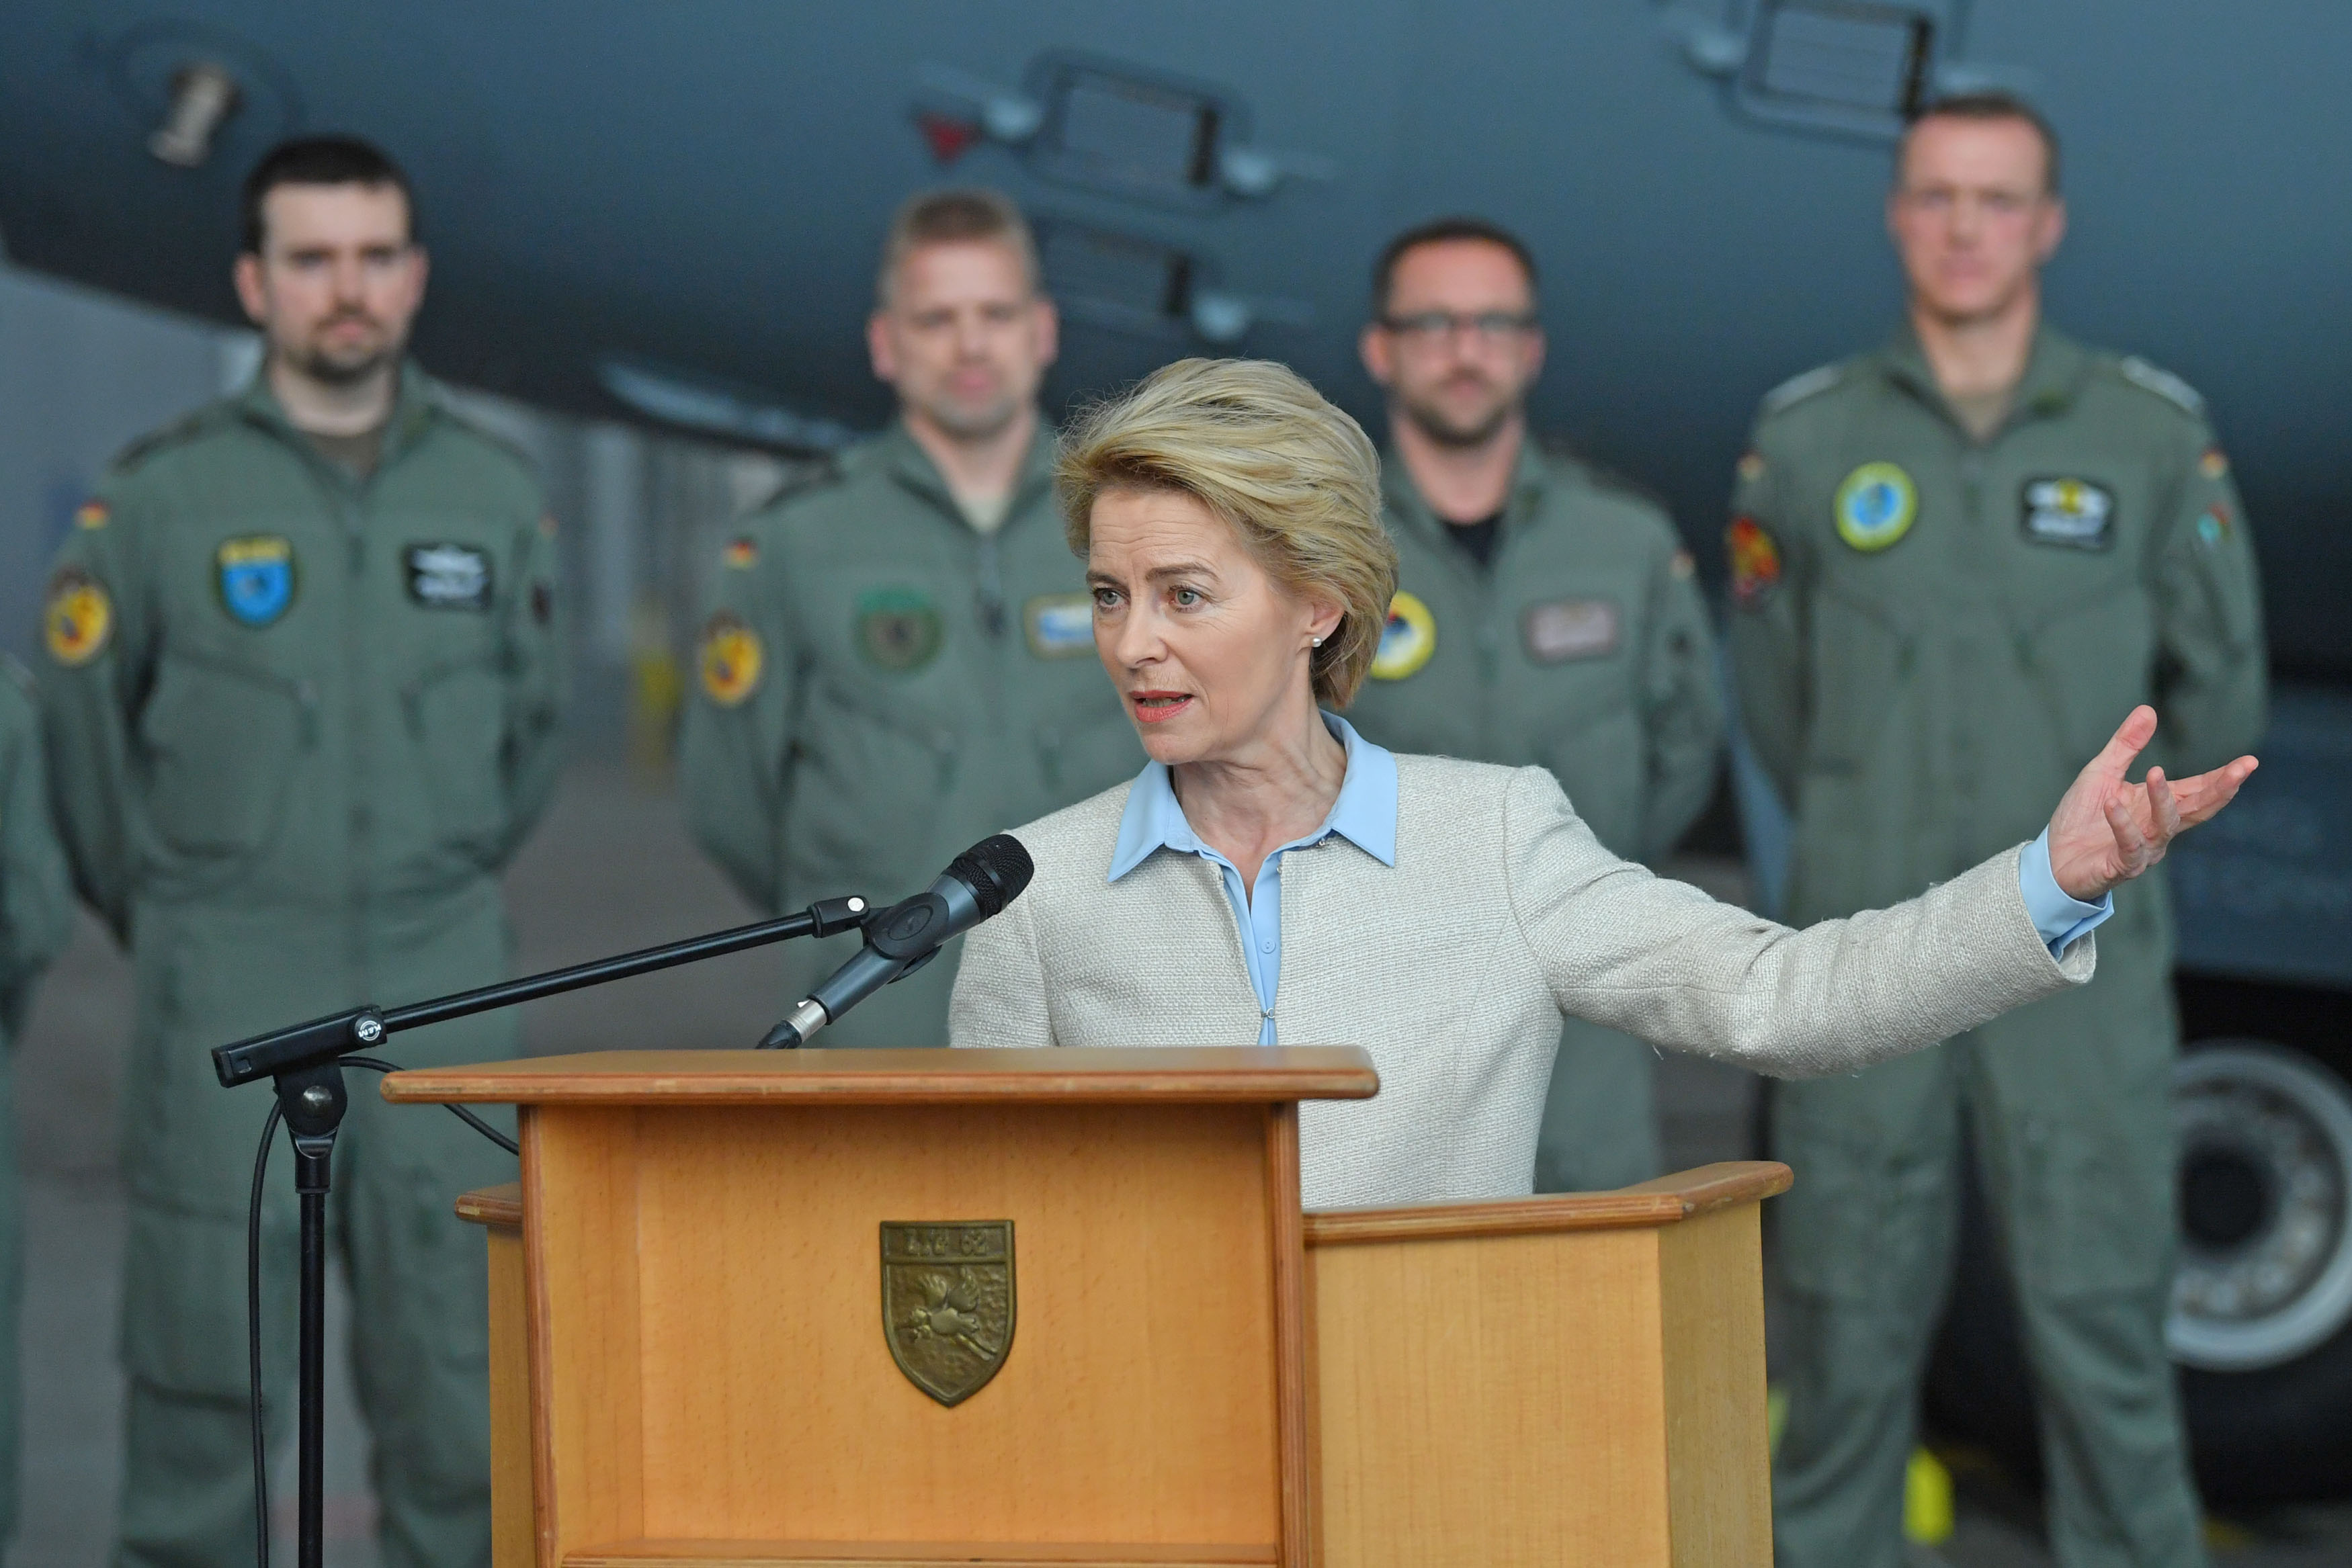 German Defense Minister Ursula von der Leyen stands in front of an Airbus A400M military transport plane of the Luftwaffe, the German air force, as she speaks to the media on January 2, 2019 in Wunstorf, Germany. (Photo by Thomas Starke/Getty Images)